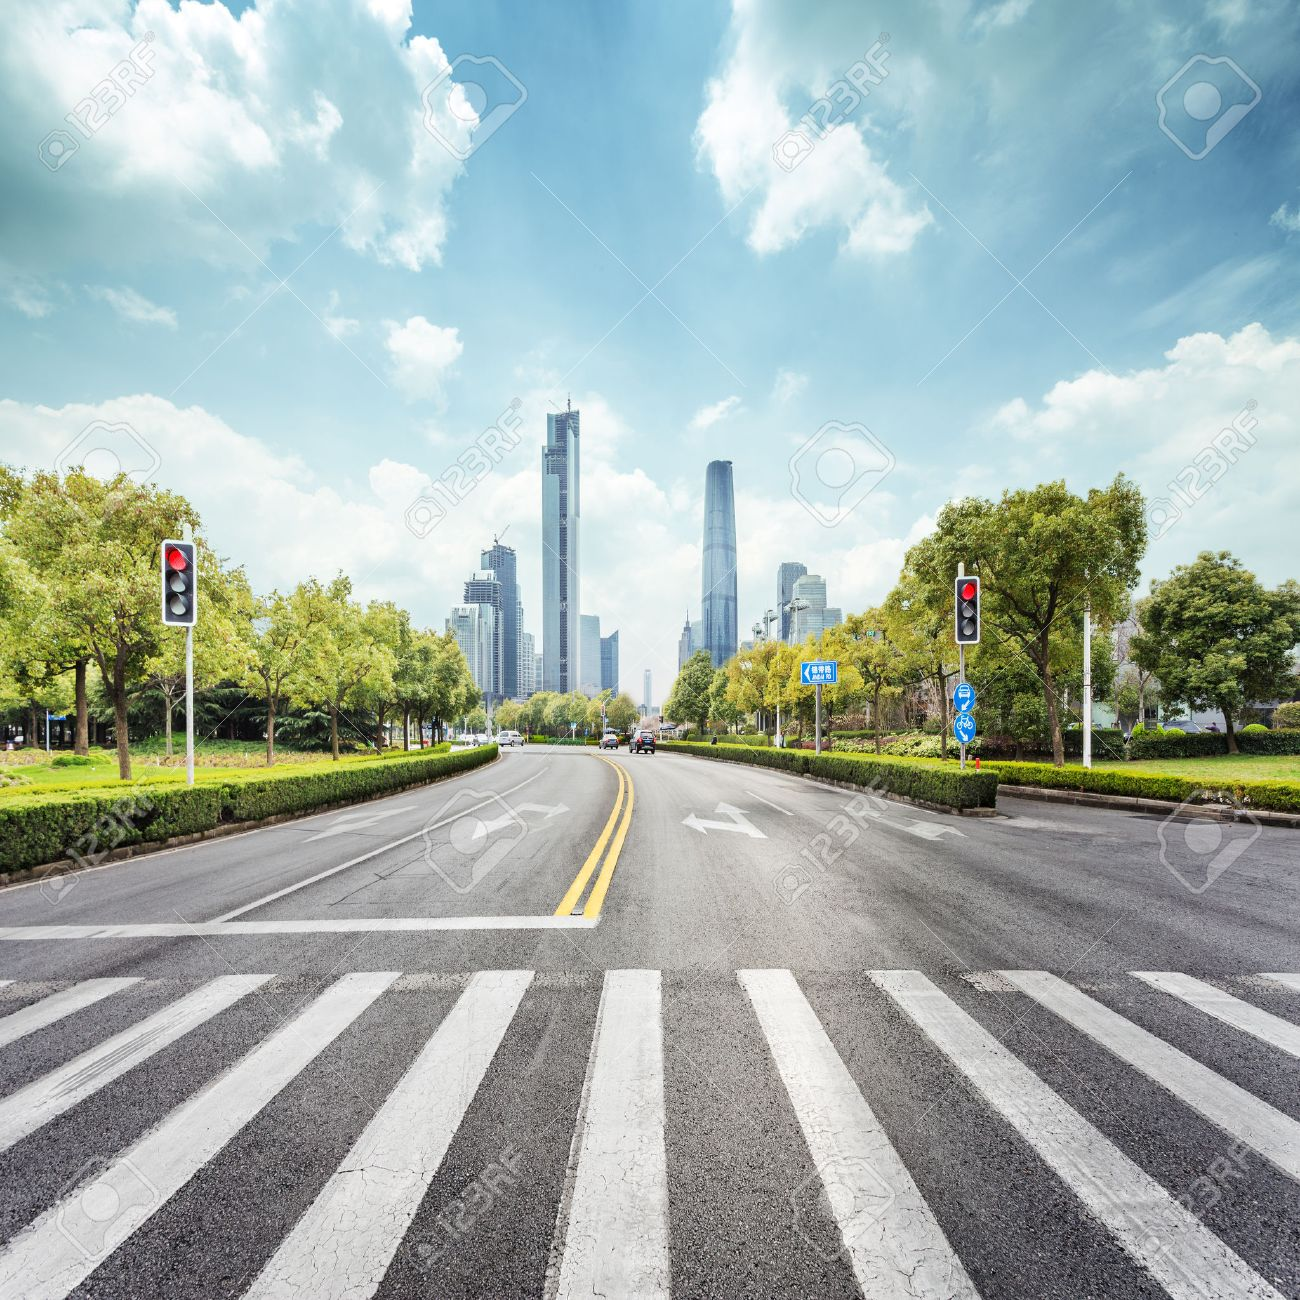 empty road with zebra crossing and skyscrapers in modern city - 45548663